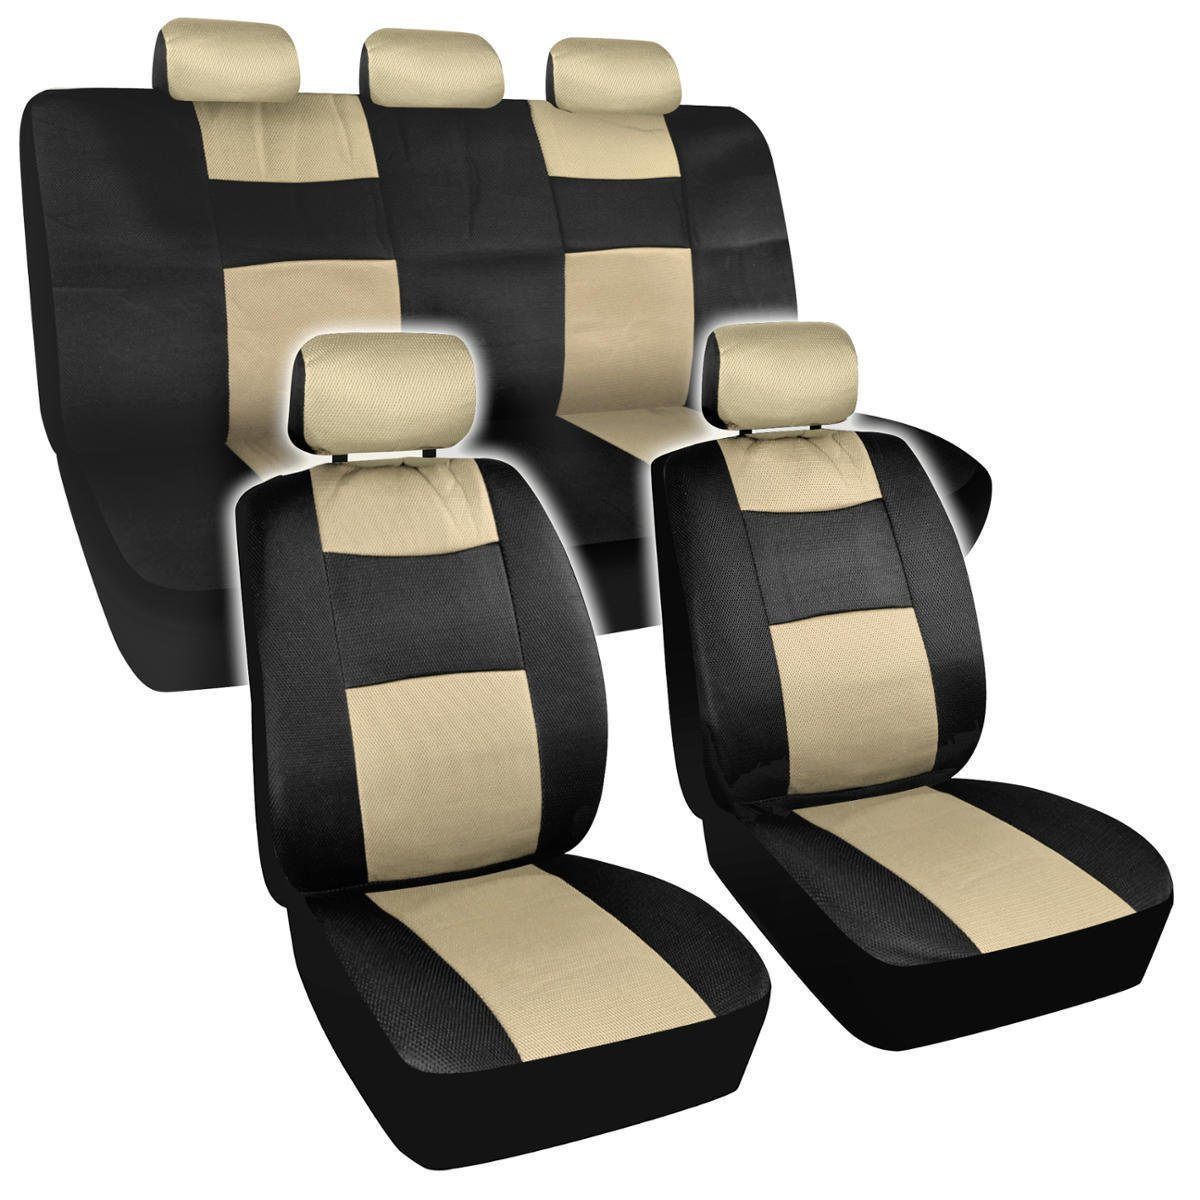 original beige mesh car seat covers premier model thickest fabric padding. Black Bedroom Furniture Sets. Home Design Ideas